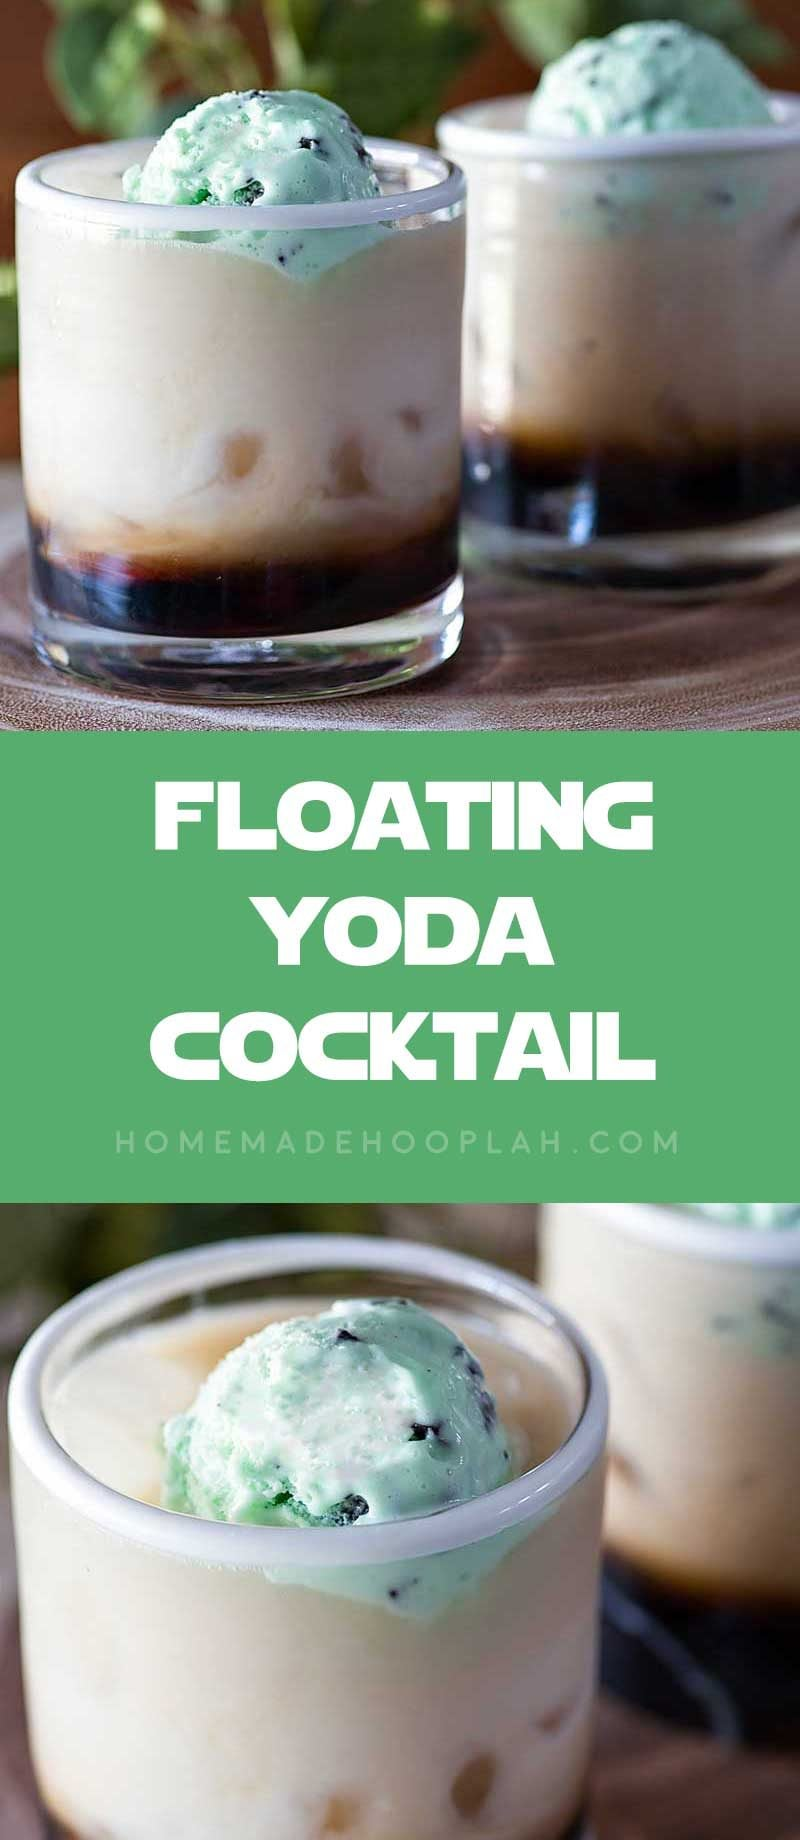 Floating Yoda Cocktail! Celebrate May the Fourth (or any movie night!) by honoring the most revered Jedi master with this fun and minty Yoda cocktail. | HomemadeHooplah.com